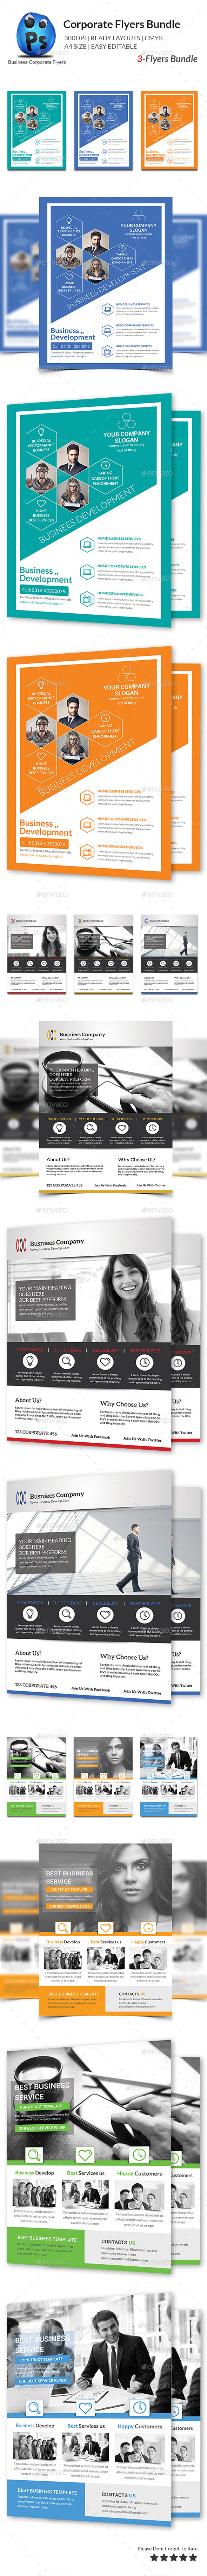 Corporate Business 3 Flyer Bundle - Corporate Flyers